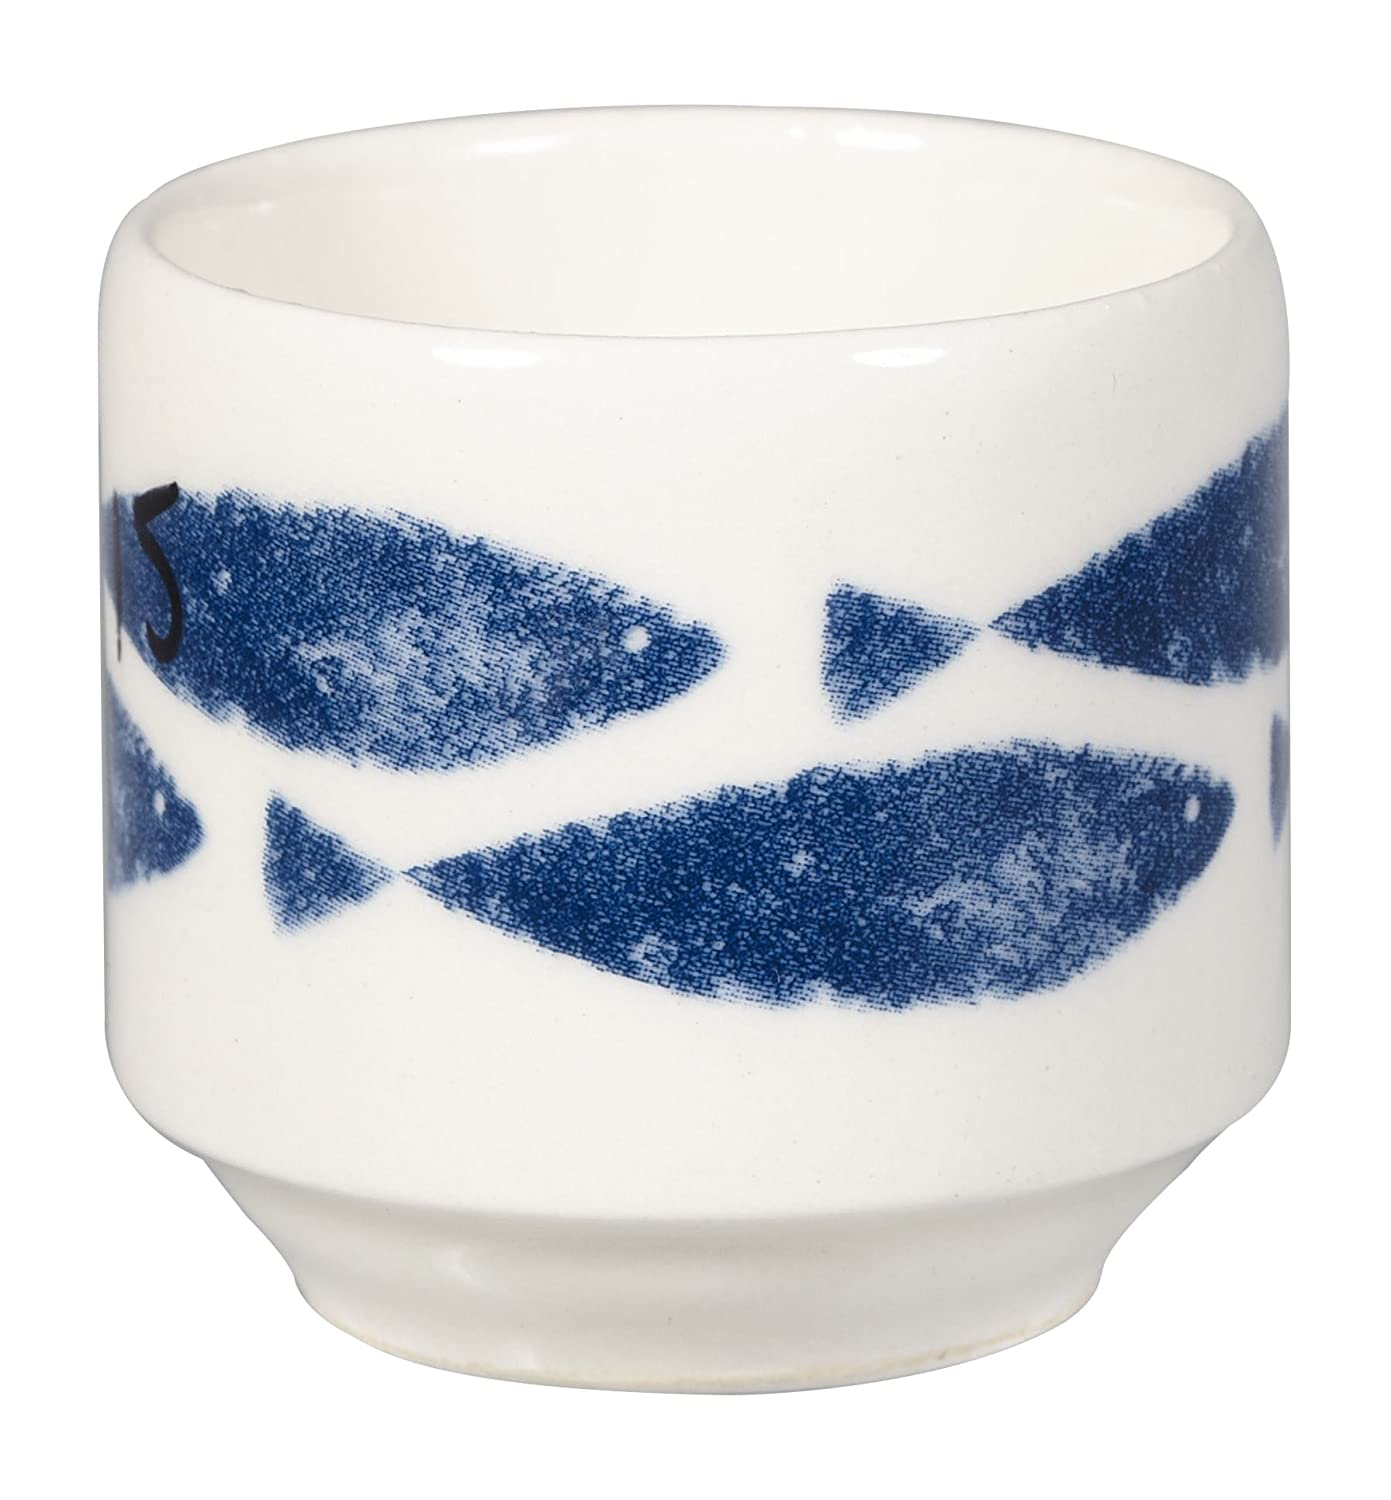 Couture Sieni Fishie Egg Cup, Set of 2, Multi-Colour Churchill China COUT00891